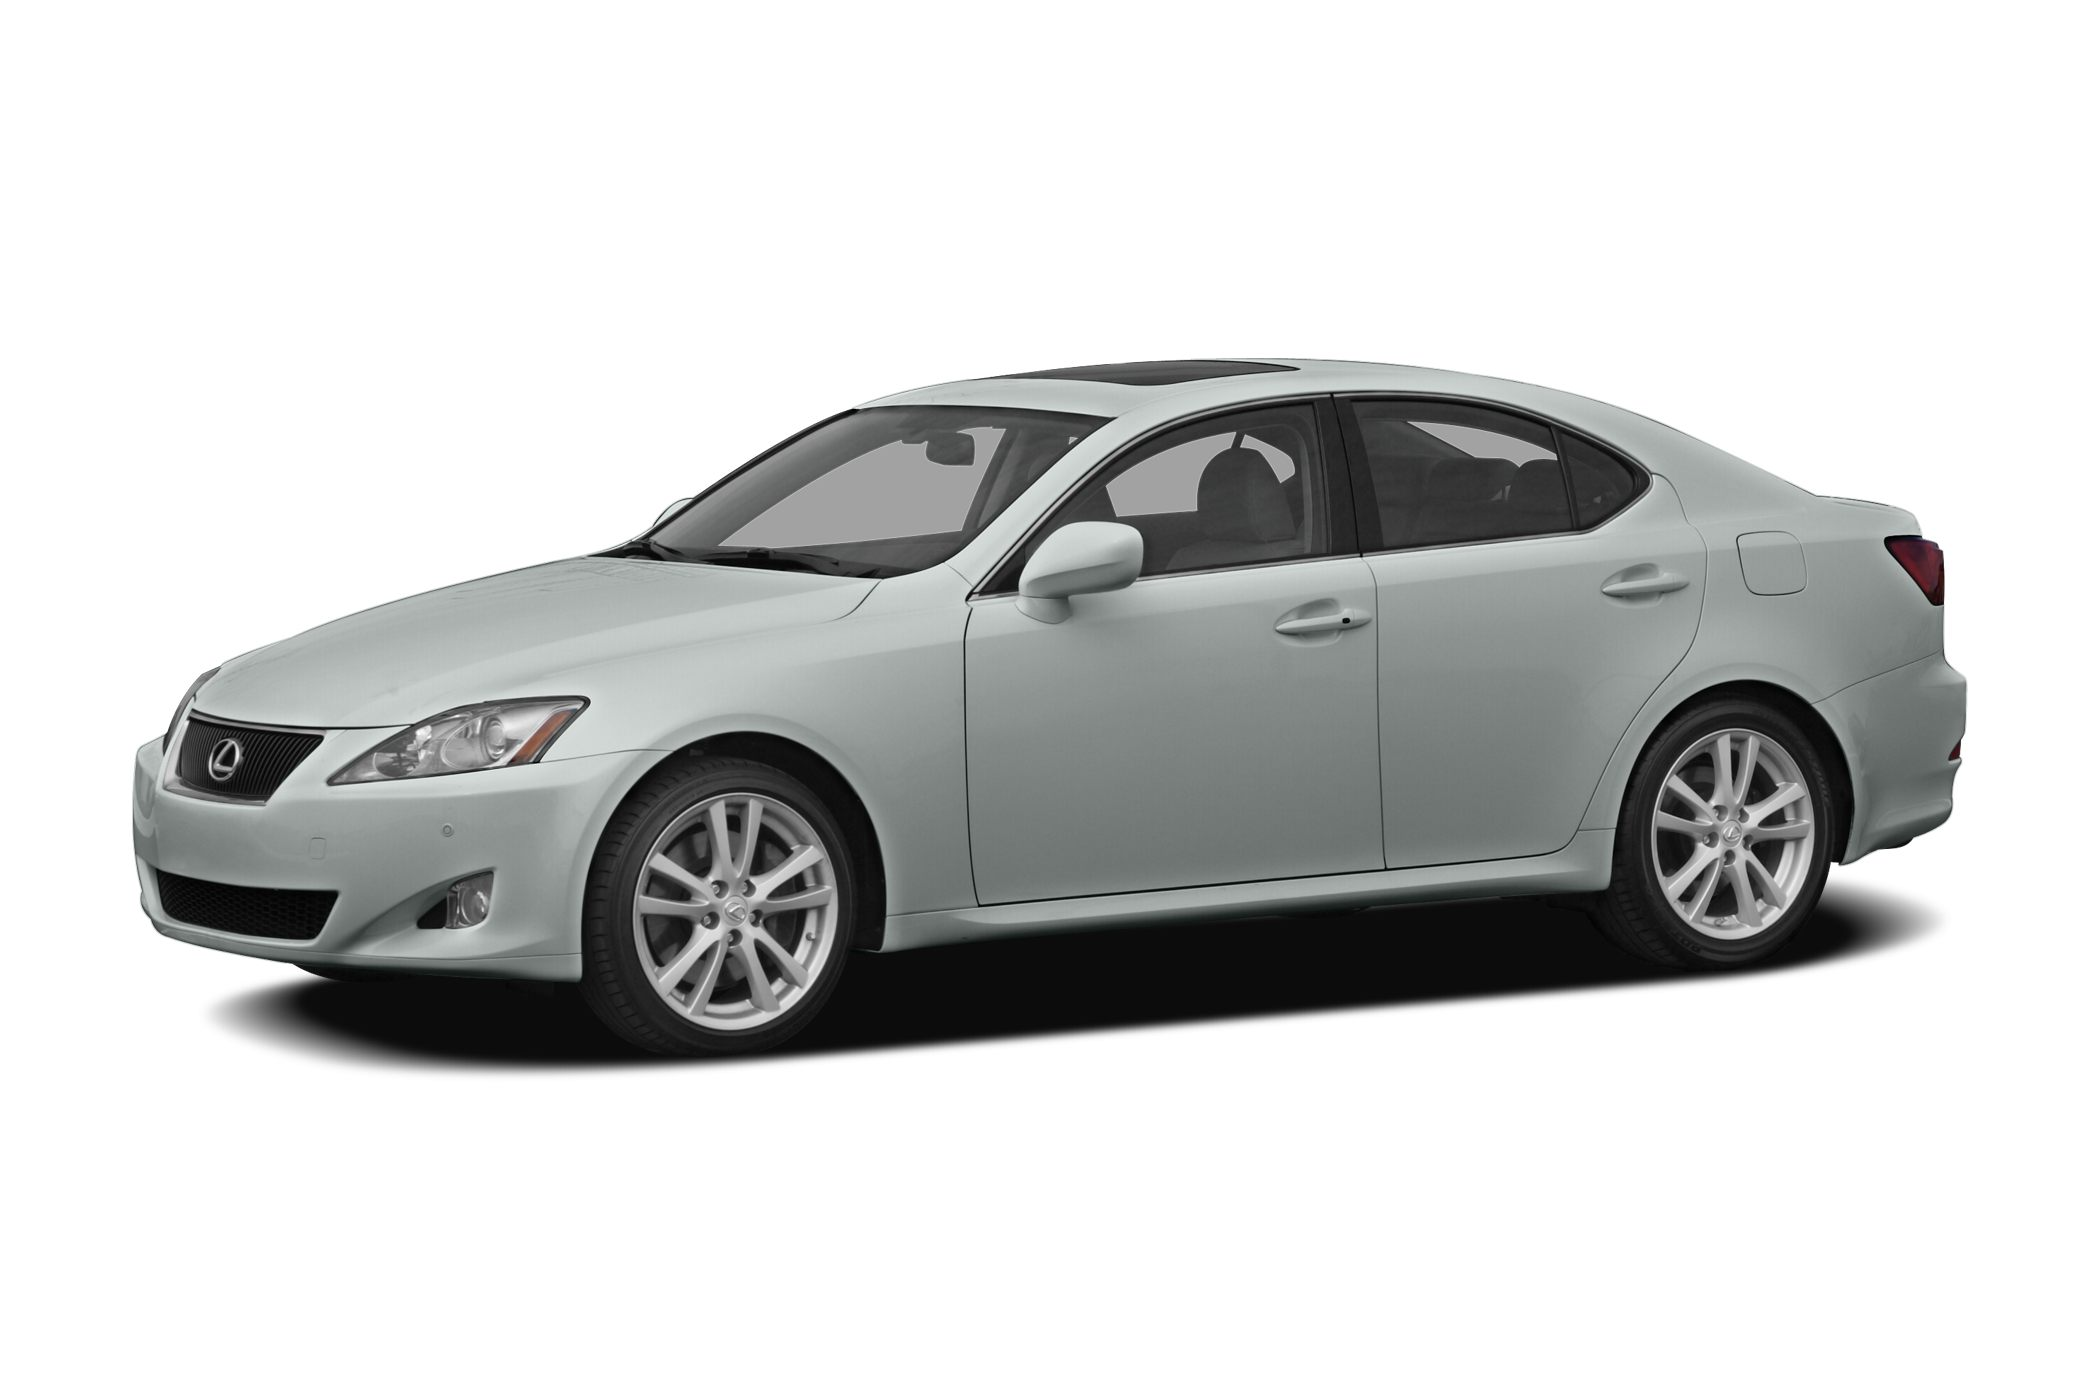 2007 Lexus IS 350 Sedan for sale in Apopka for $15,000 with 96,888 miles